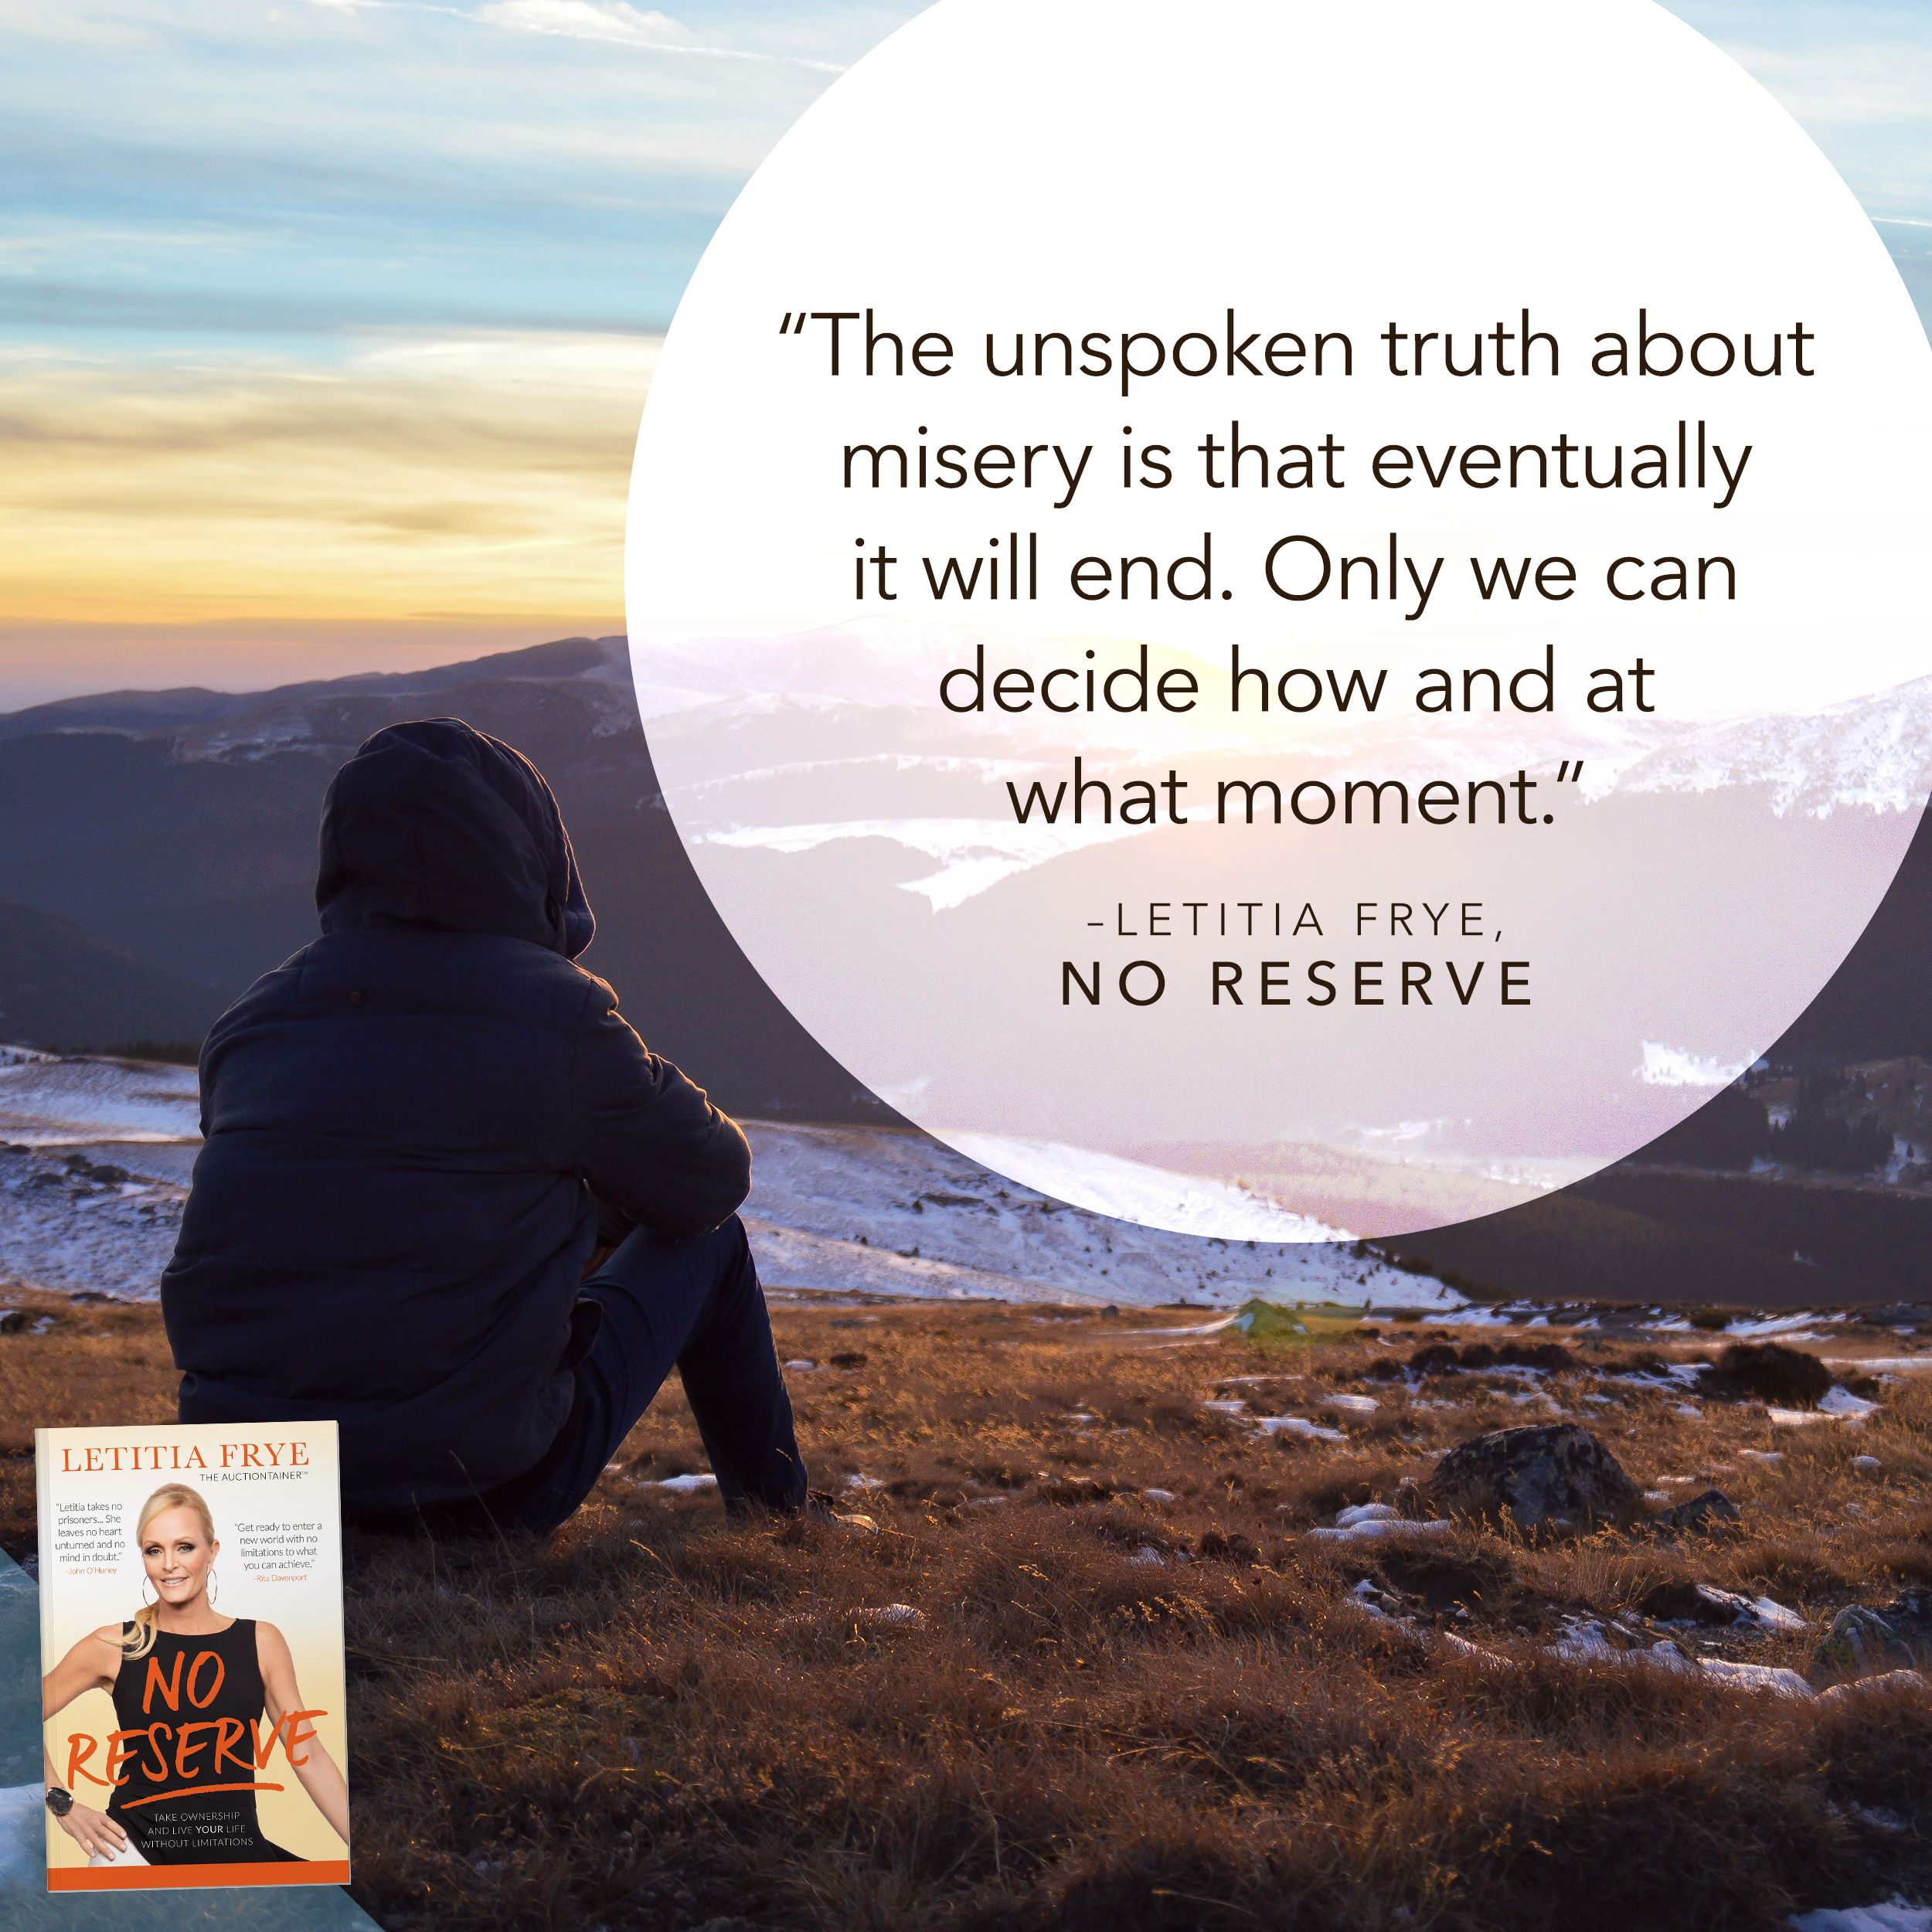 Today, will you decide to get the maximum value out of life that you deserve?  Today, will you take the reserve off your life so that you can enjoy freedom, joy, and endless opportunity?   Today, will you love yourself enough to go all in on your dreams?  #noreserve #noreservebook #auctionlife #auctiontainer #success #risk #allin #inspiration #motivation #empowerment #liveyourlife #purpose #passion #dreams #goals #personalgrowth #personaldevelopment #personaldevelopmentbooks #soundwisdom